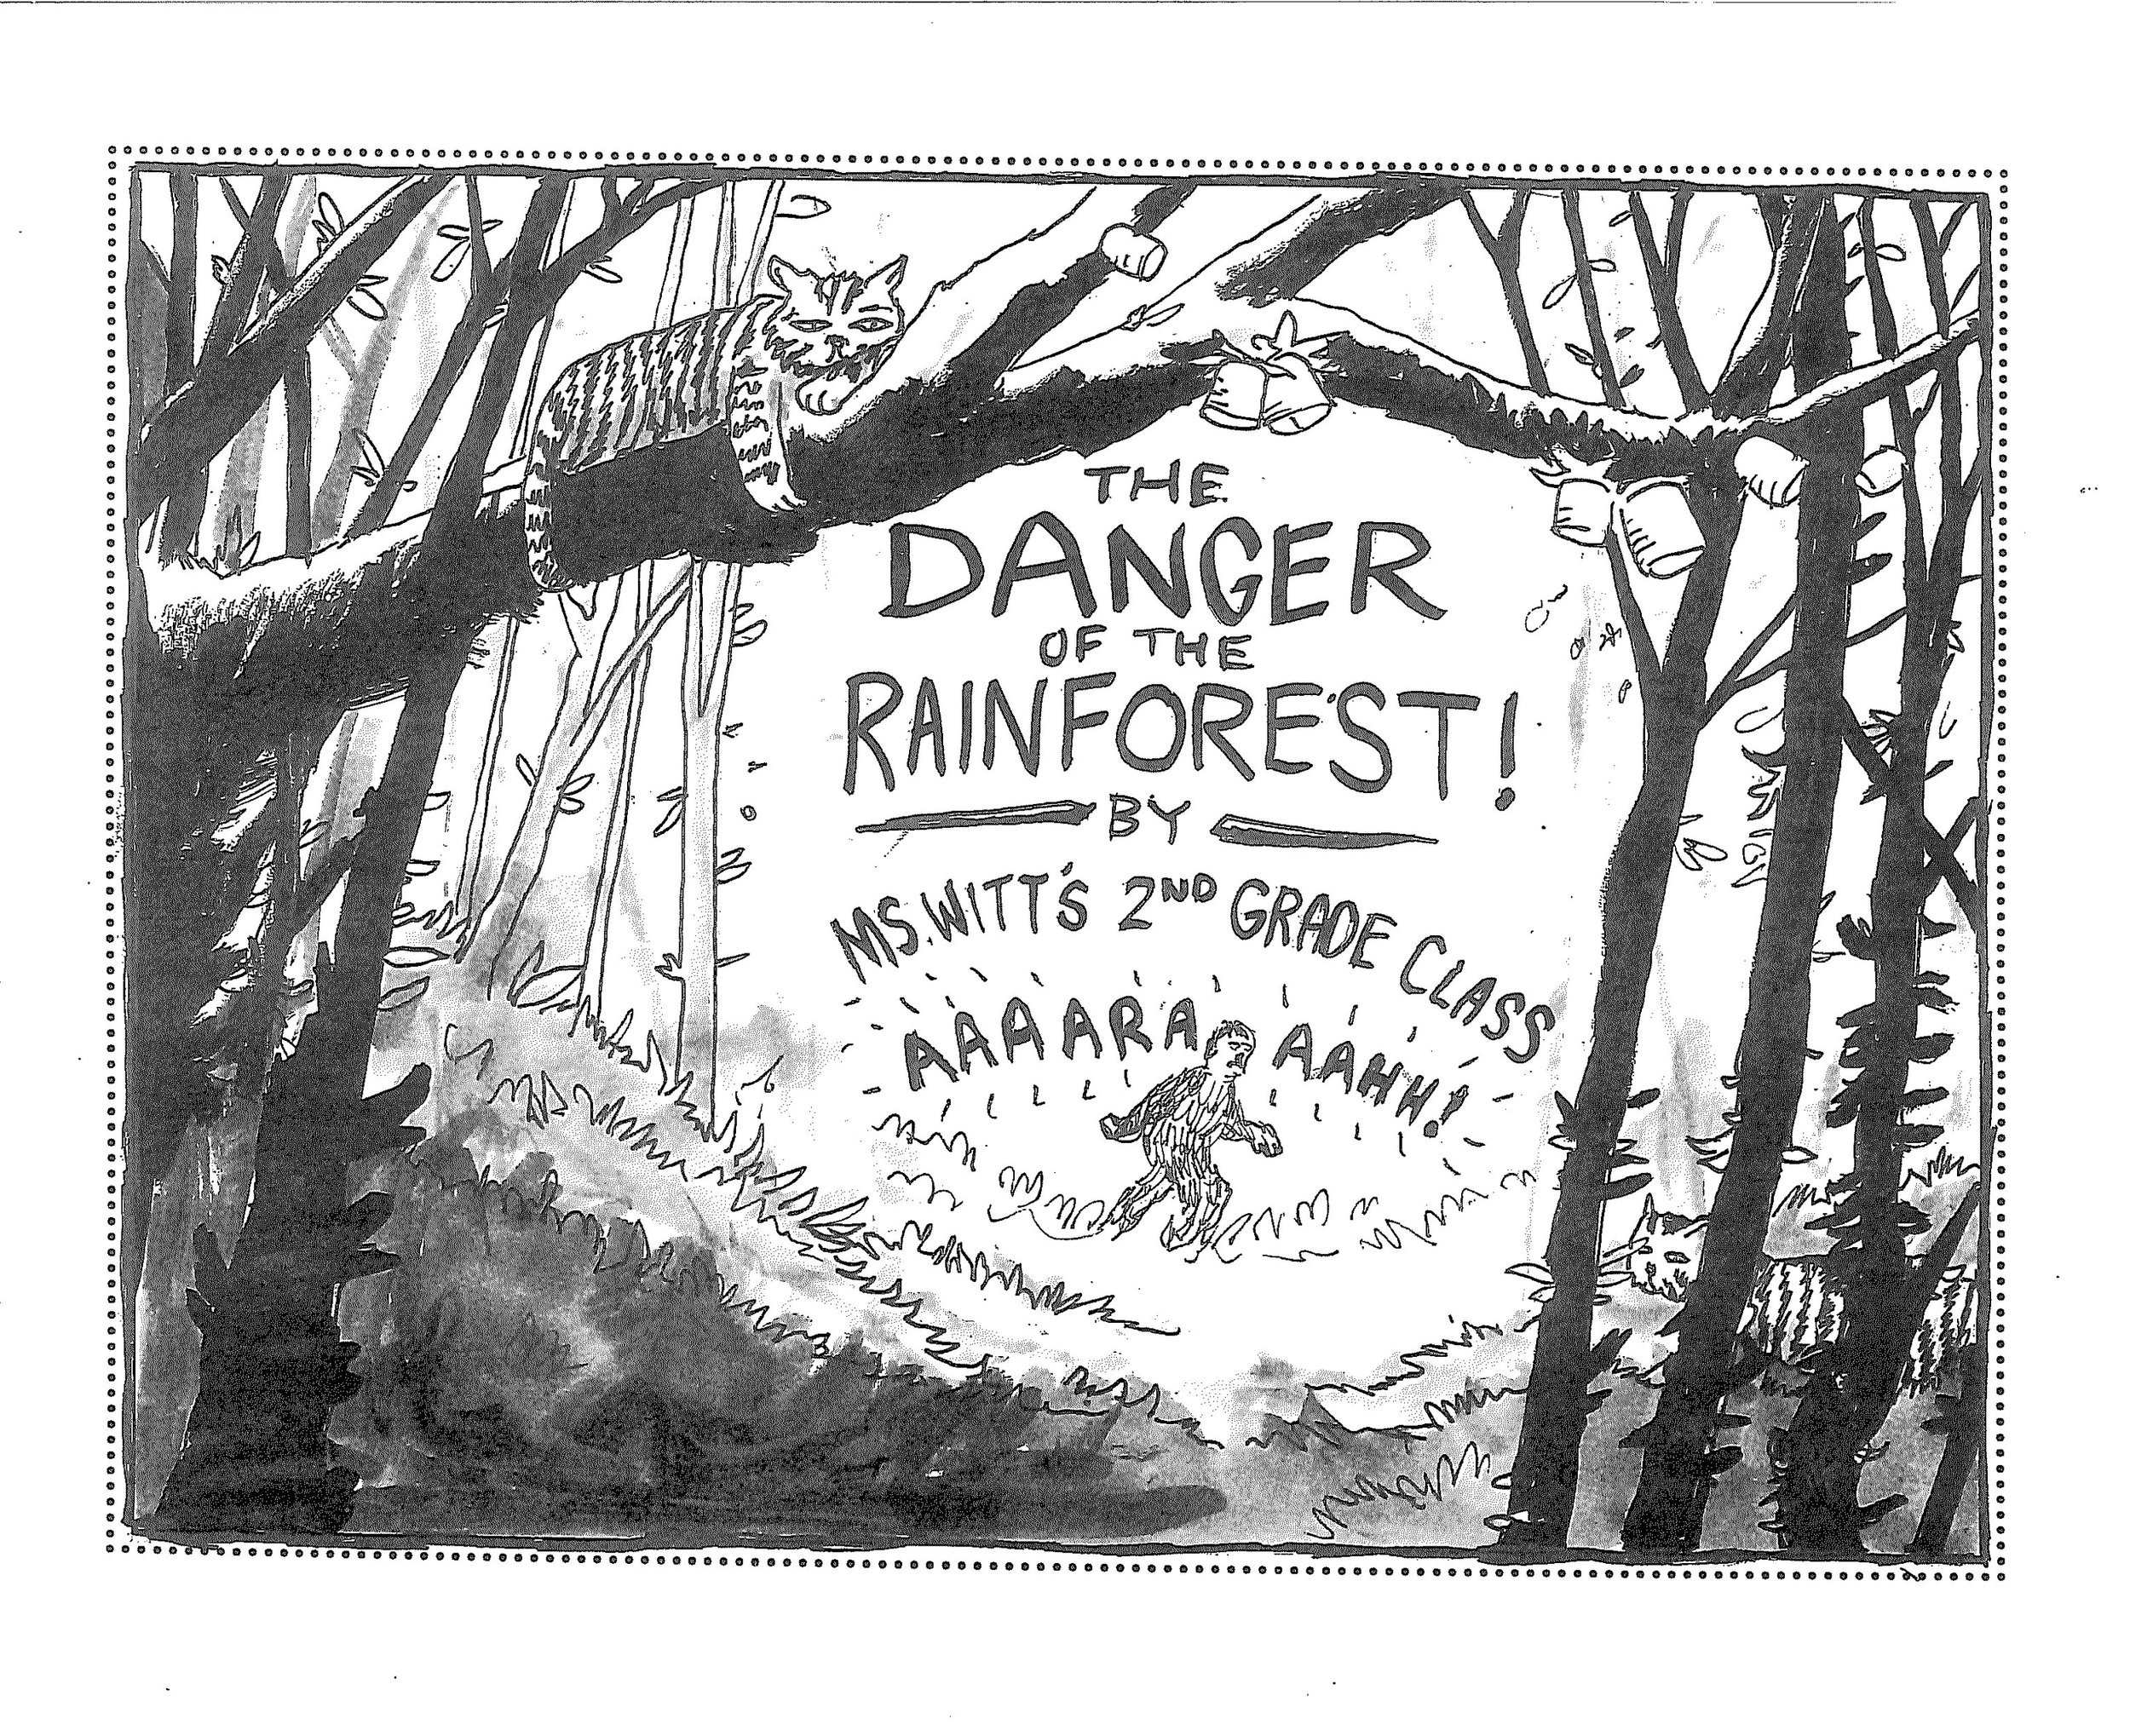 """This is """"The Danger of the Rainforest,"""" cover art drawn by Taylor!"""